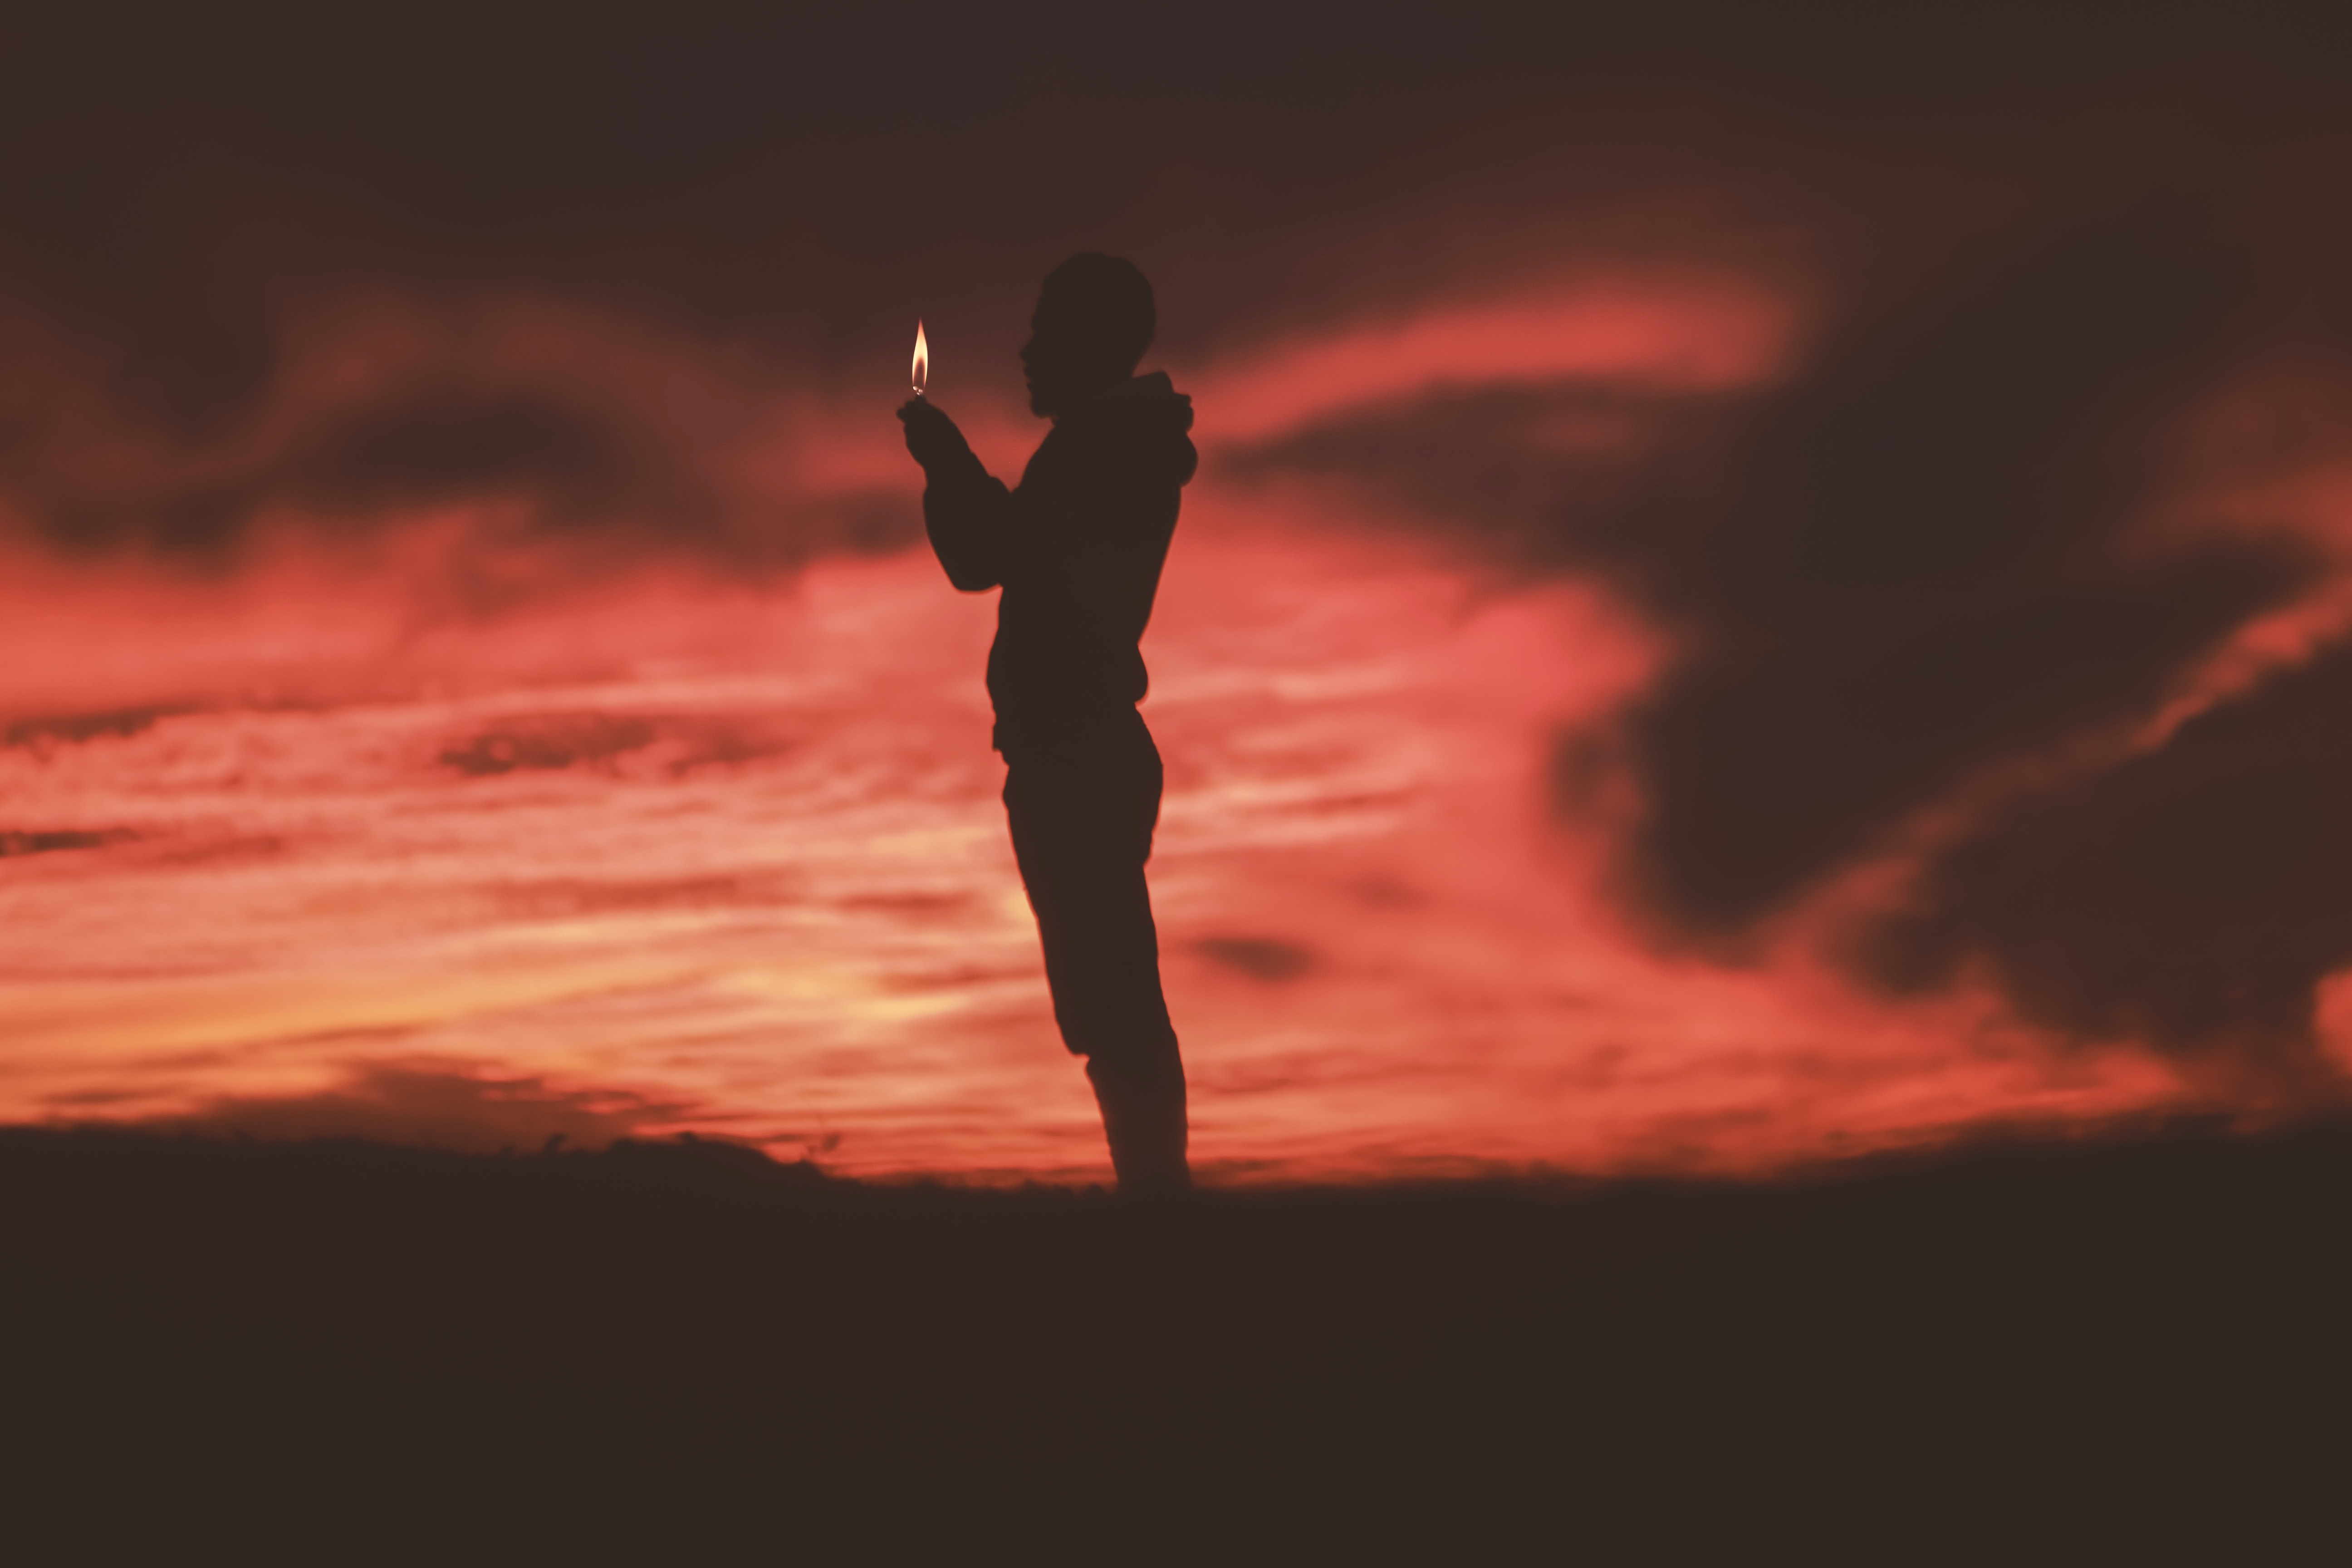 A silhouette of a man holding a lighter against a red sky at dusk